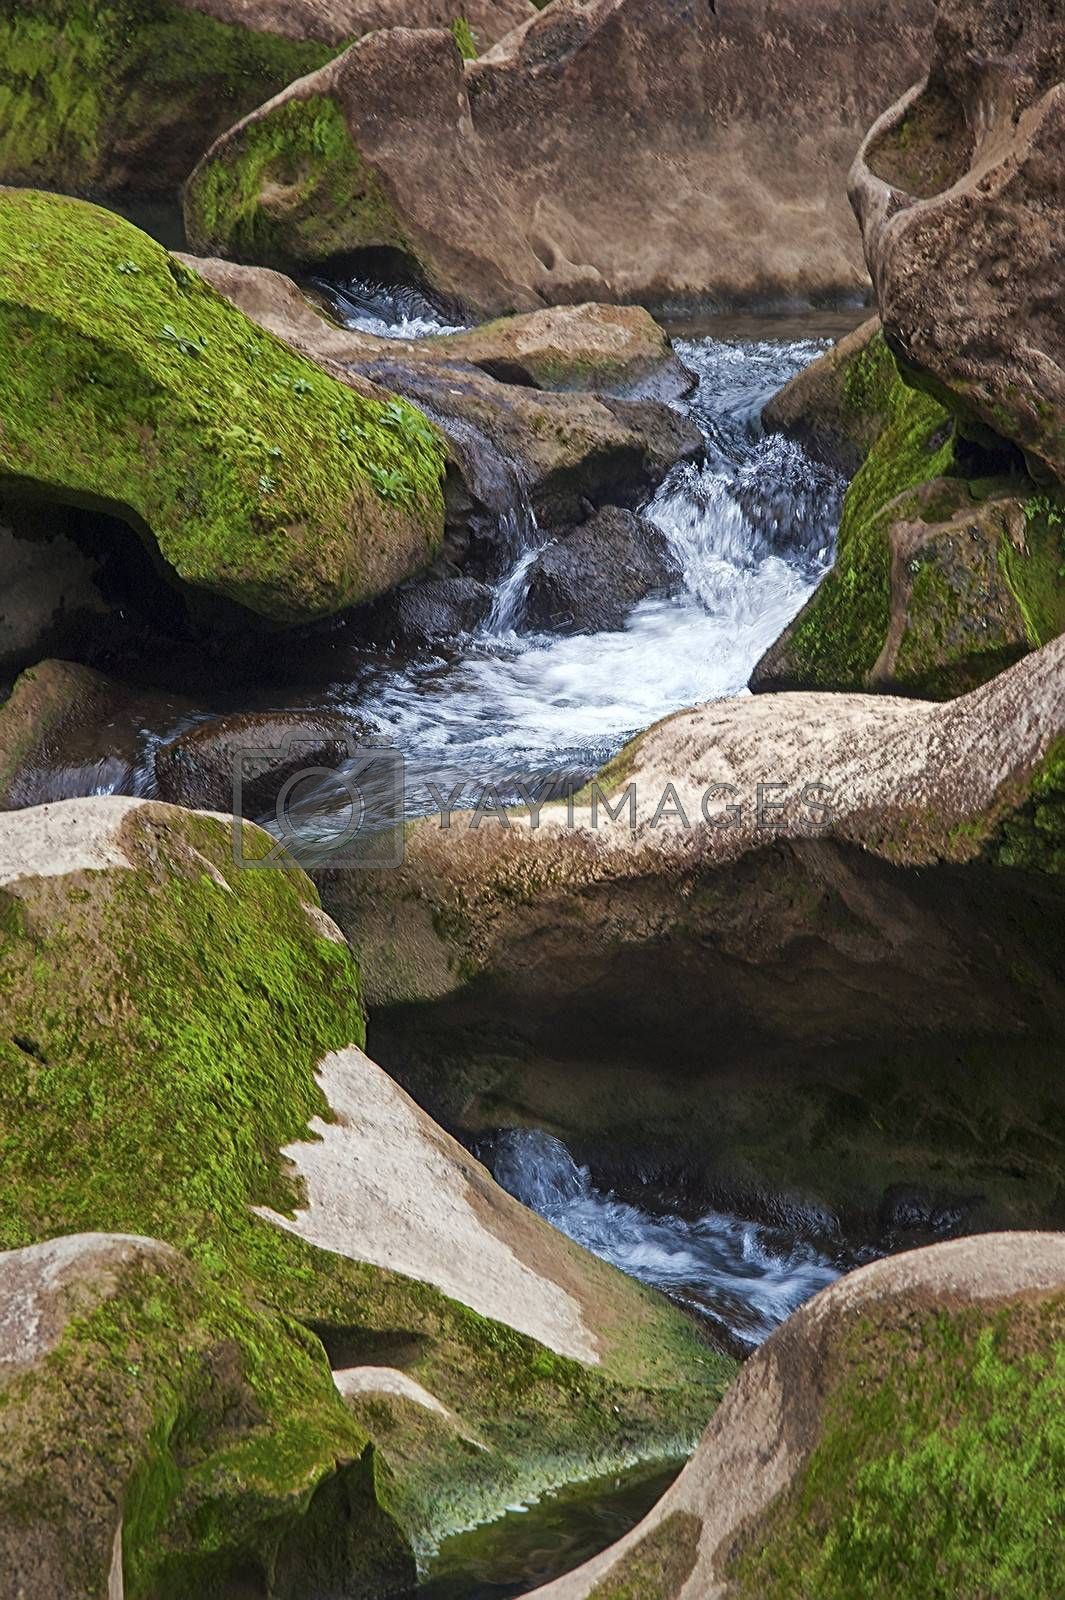 Streams - a small waterfall by xfdly5